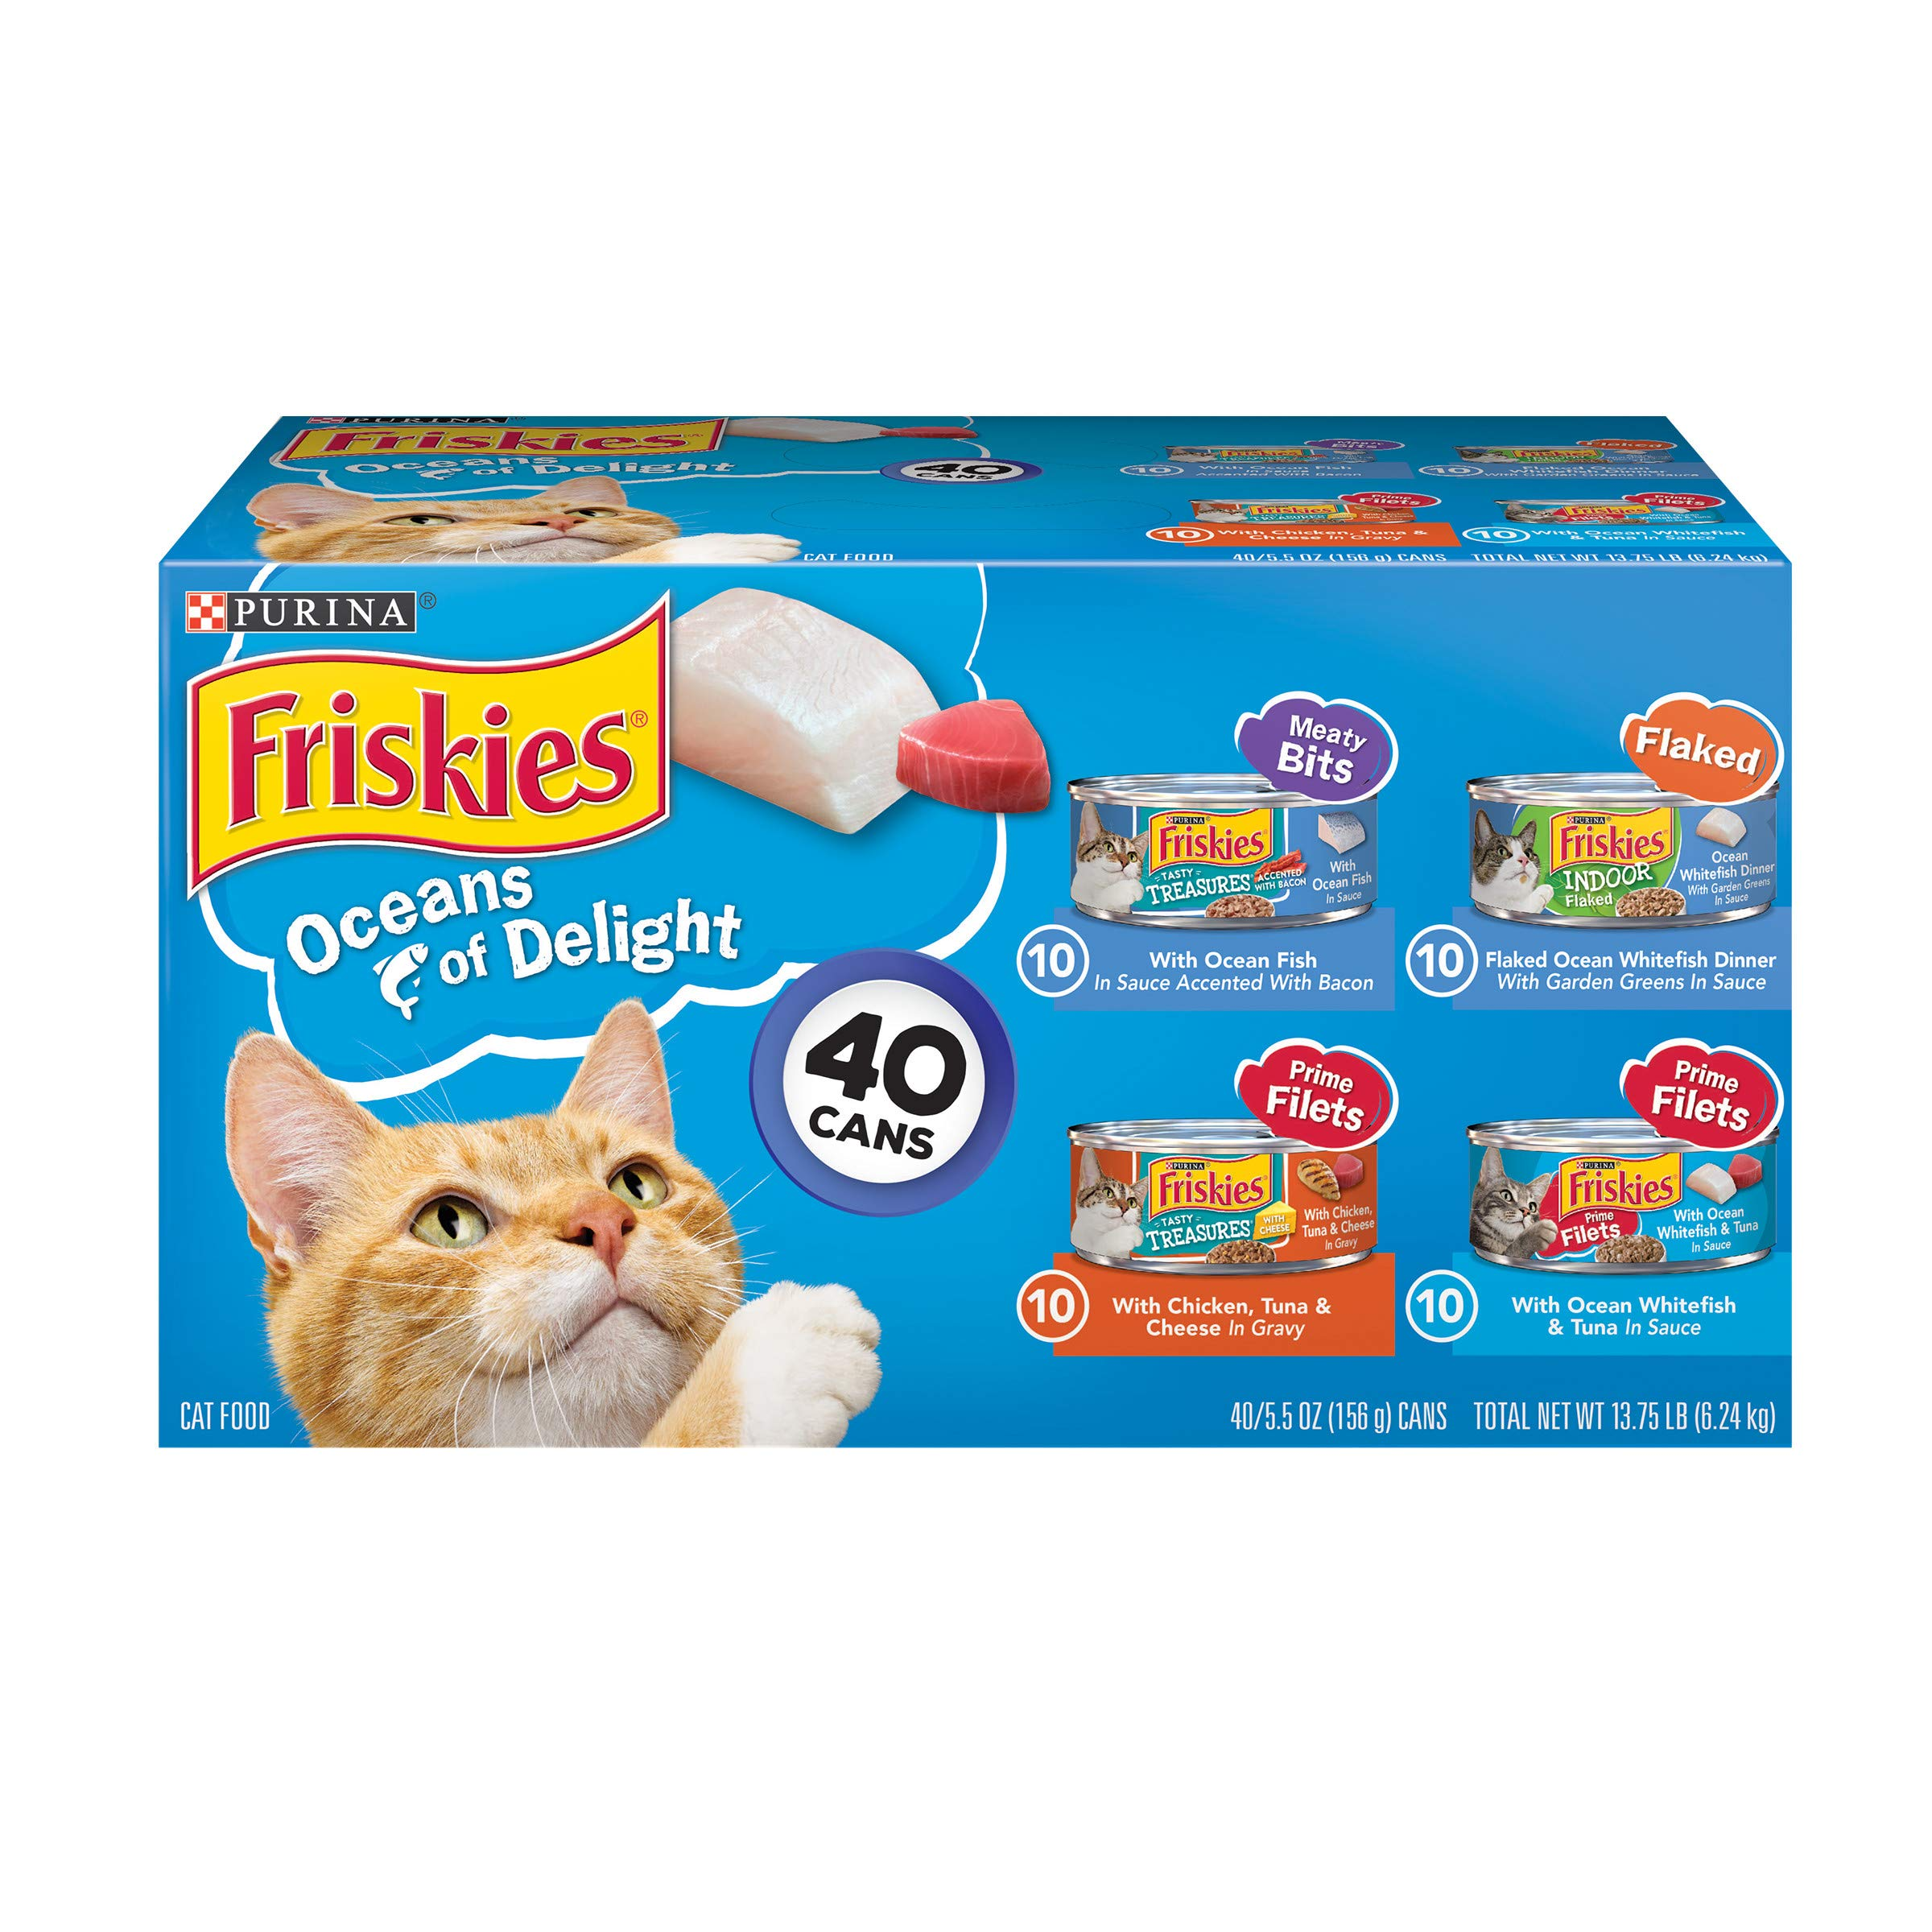 Purina Friskies Wet Cat Food Variety Pack, Oceans of Delight Meaty Bits, Flaked & Prime Filets - (40) 5.5 oz. Cans by Purina Friskies